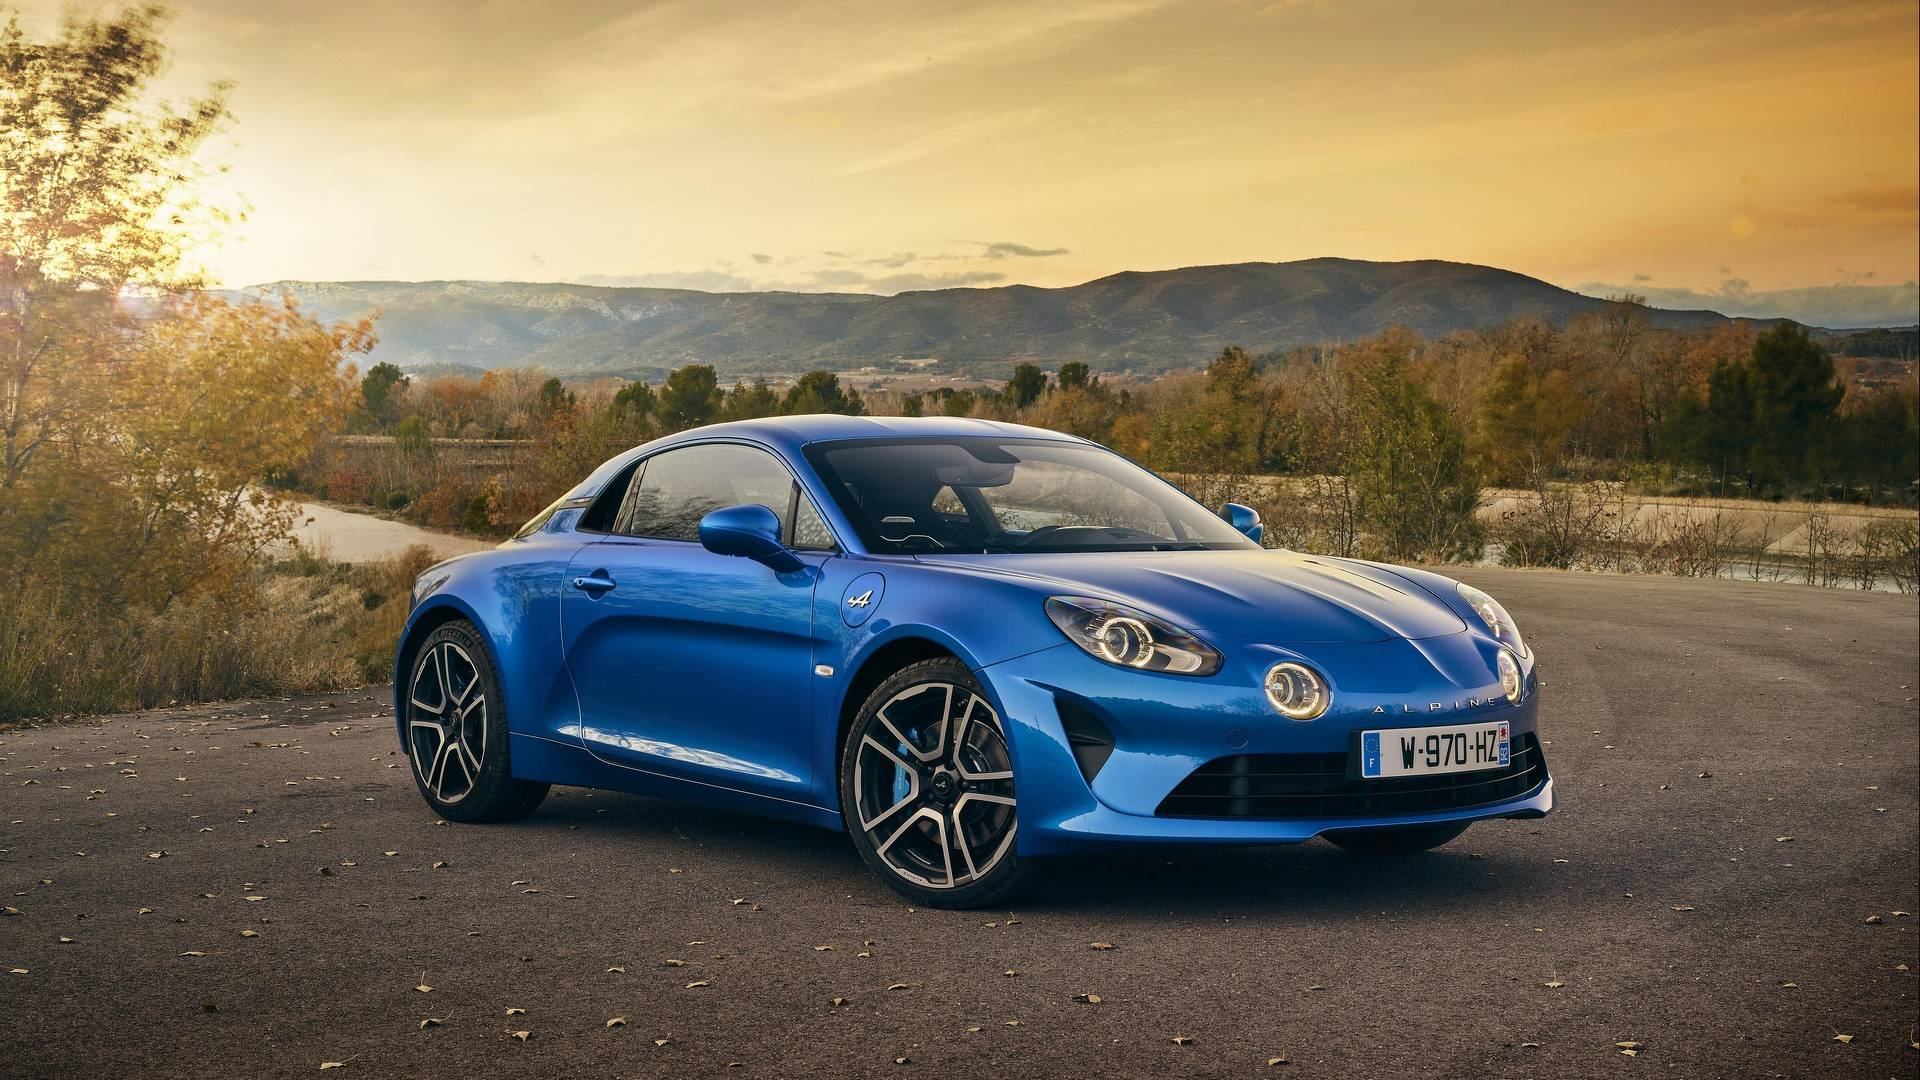 Alpine A110 Ready For Its Close Up In New Eye Candy s Videos